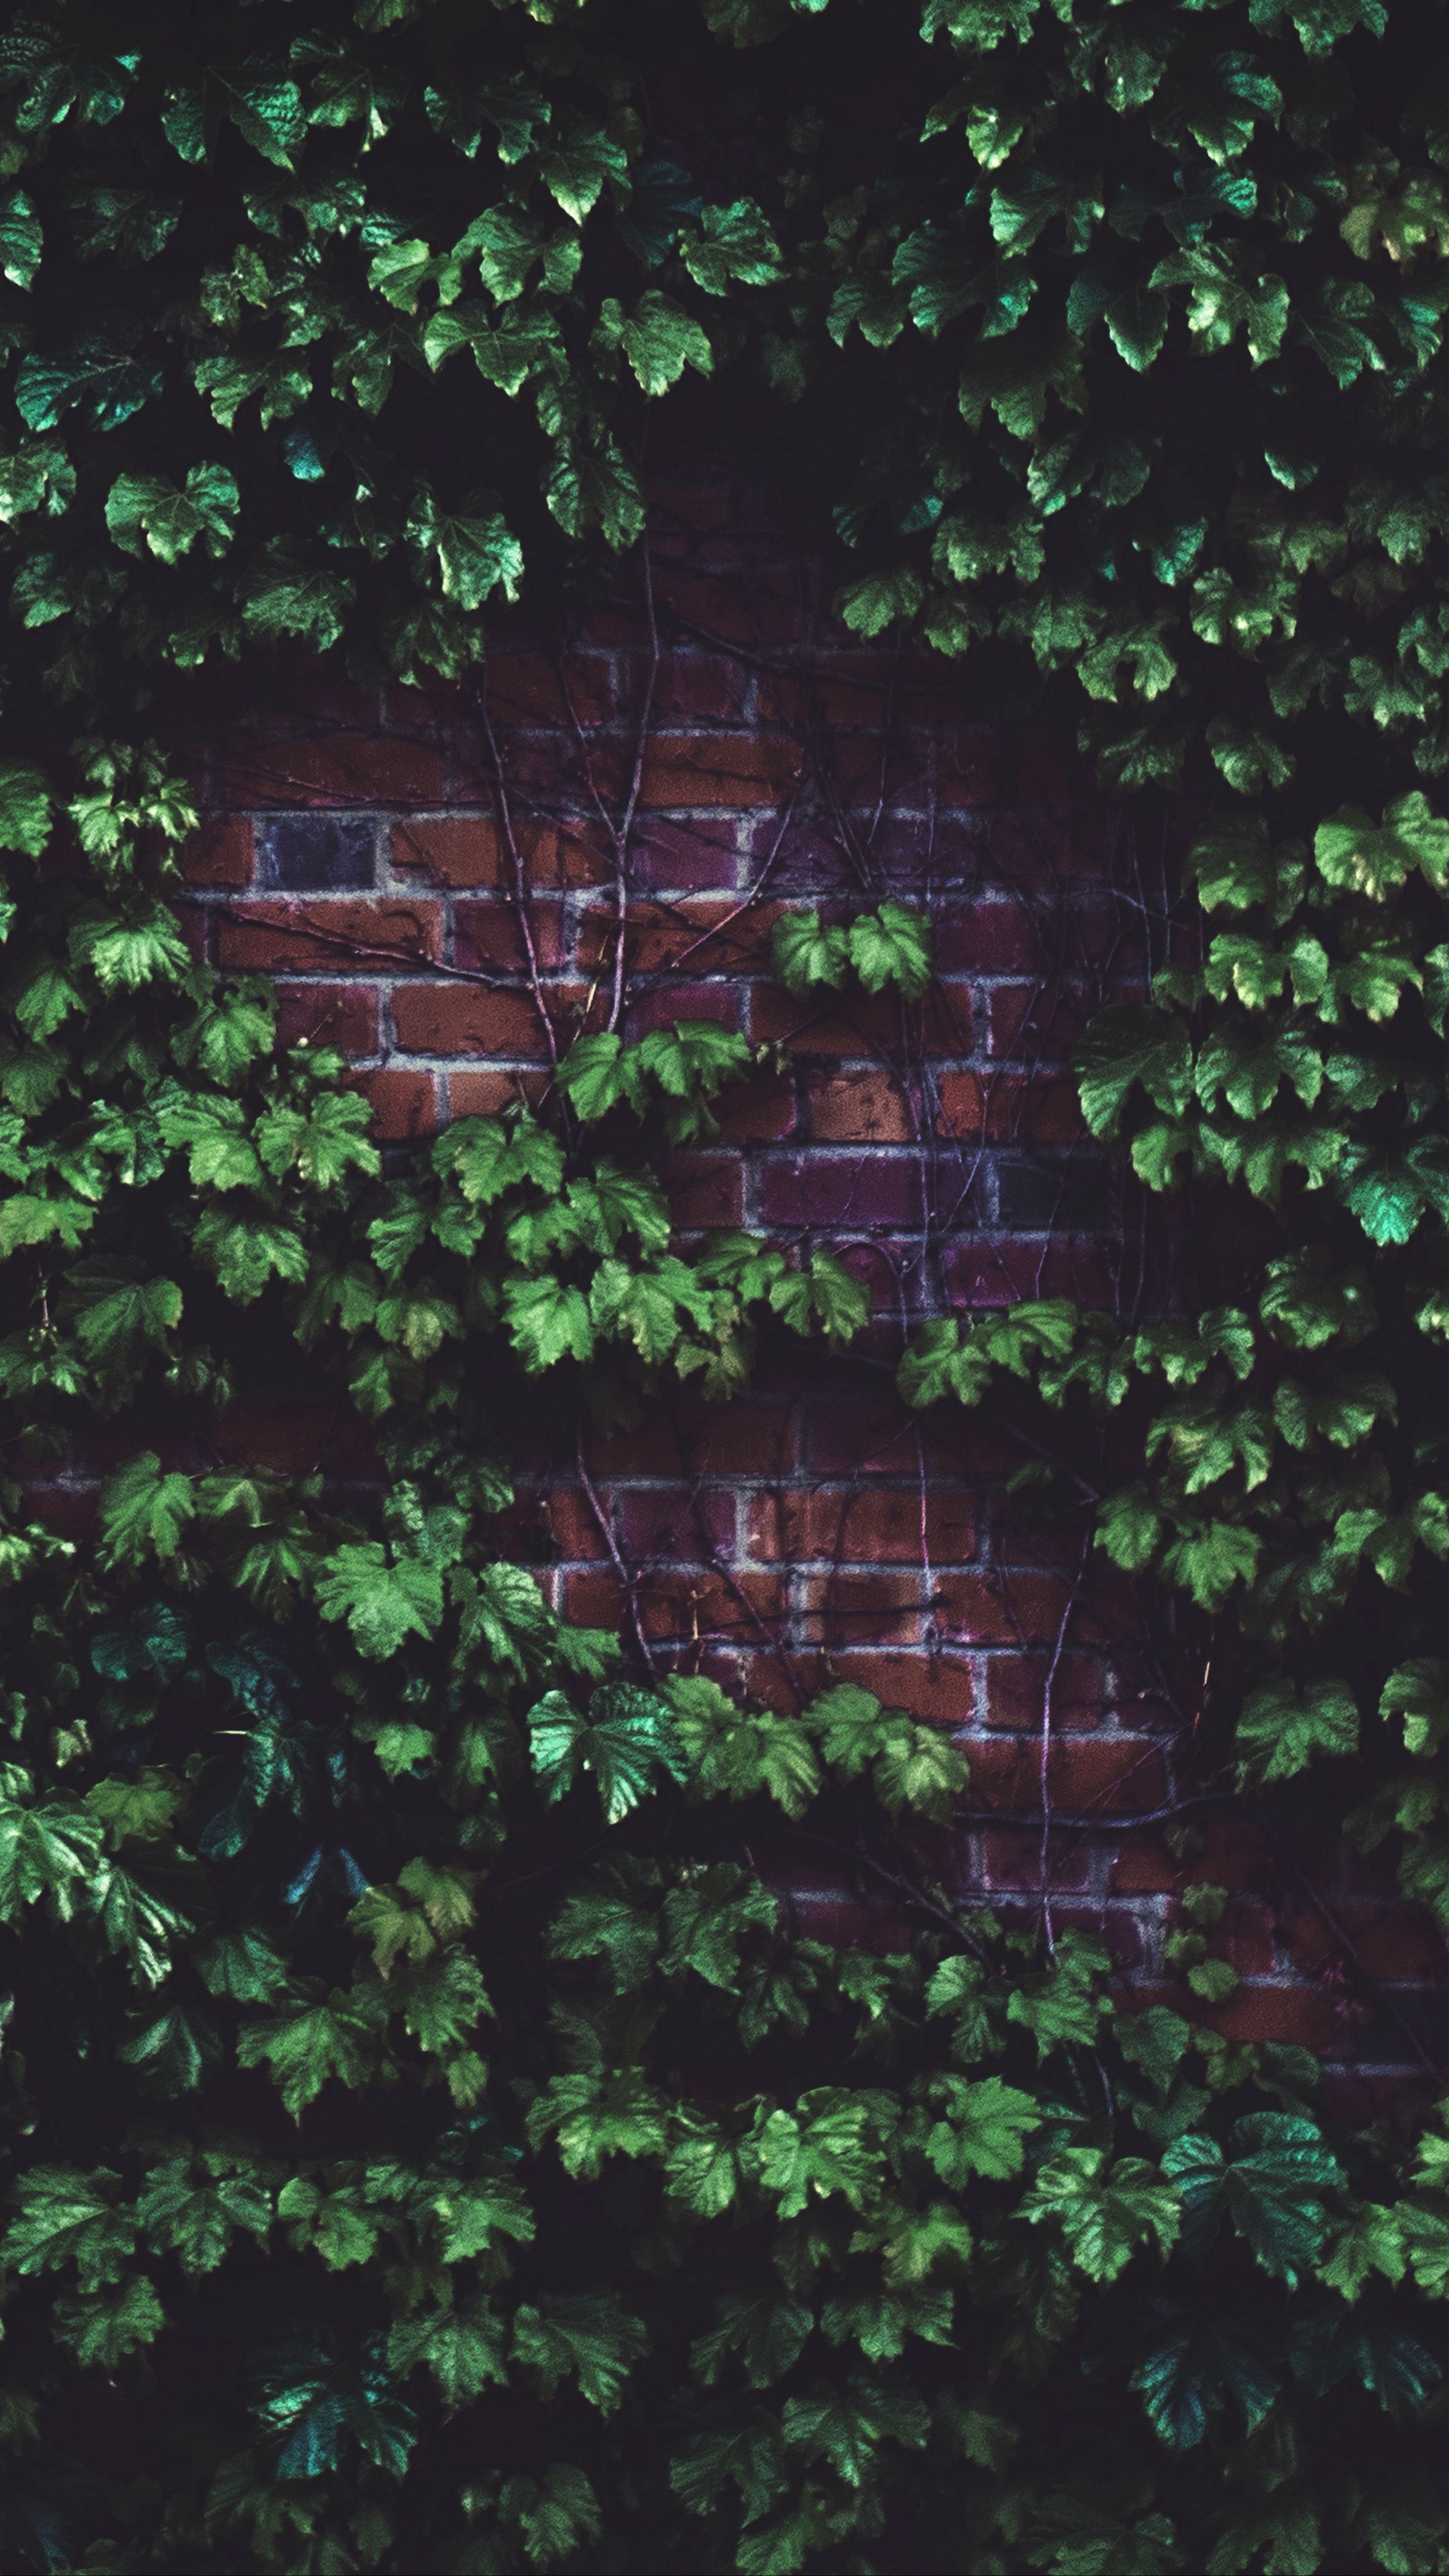 Misc Leaves Brickwall Plant Wallpapers Hd 4k Background For Android Landscape Wallpaper Brick Wallpaper Iphone Brick Wall Wallpaper